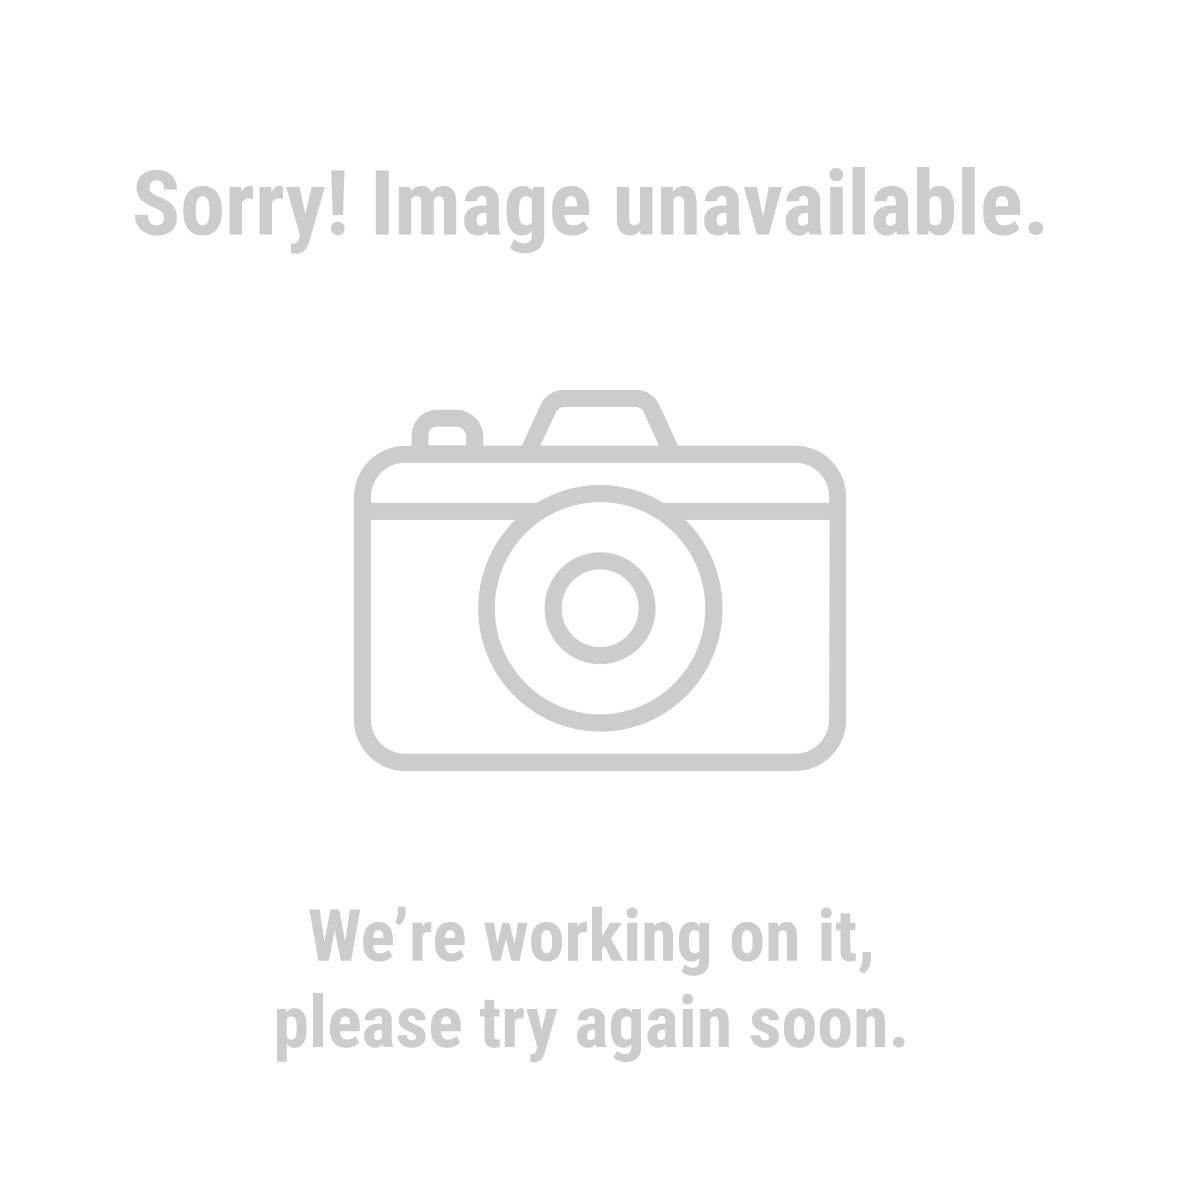 Pittsburgh 62462 33 ft. x 1 in. QuikFind Tape Measure